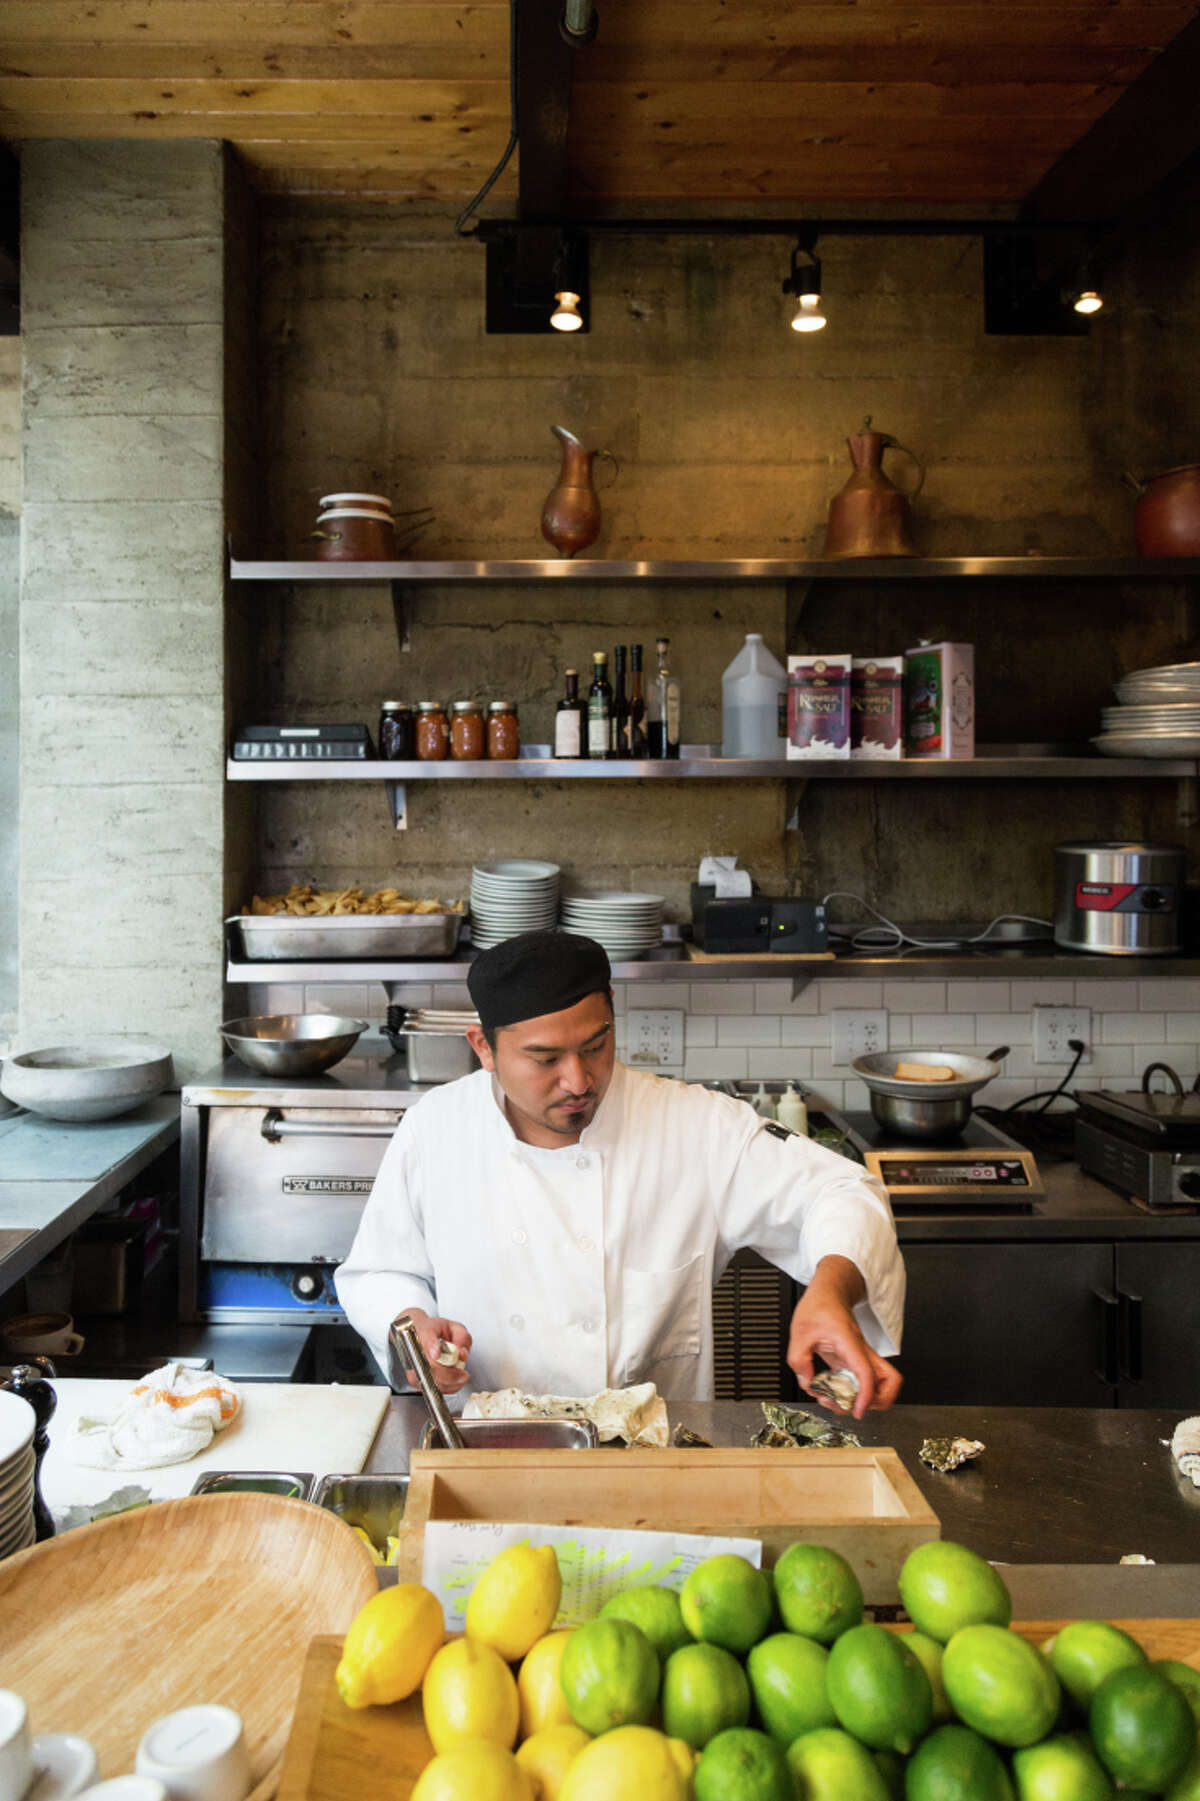 Roberto Medina shucks oysters during brunch at Foreign Cinema in San Francisco.